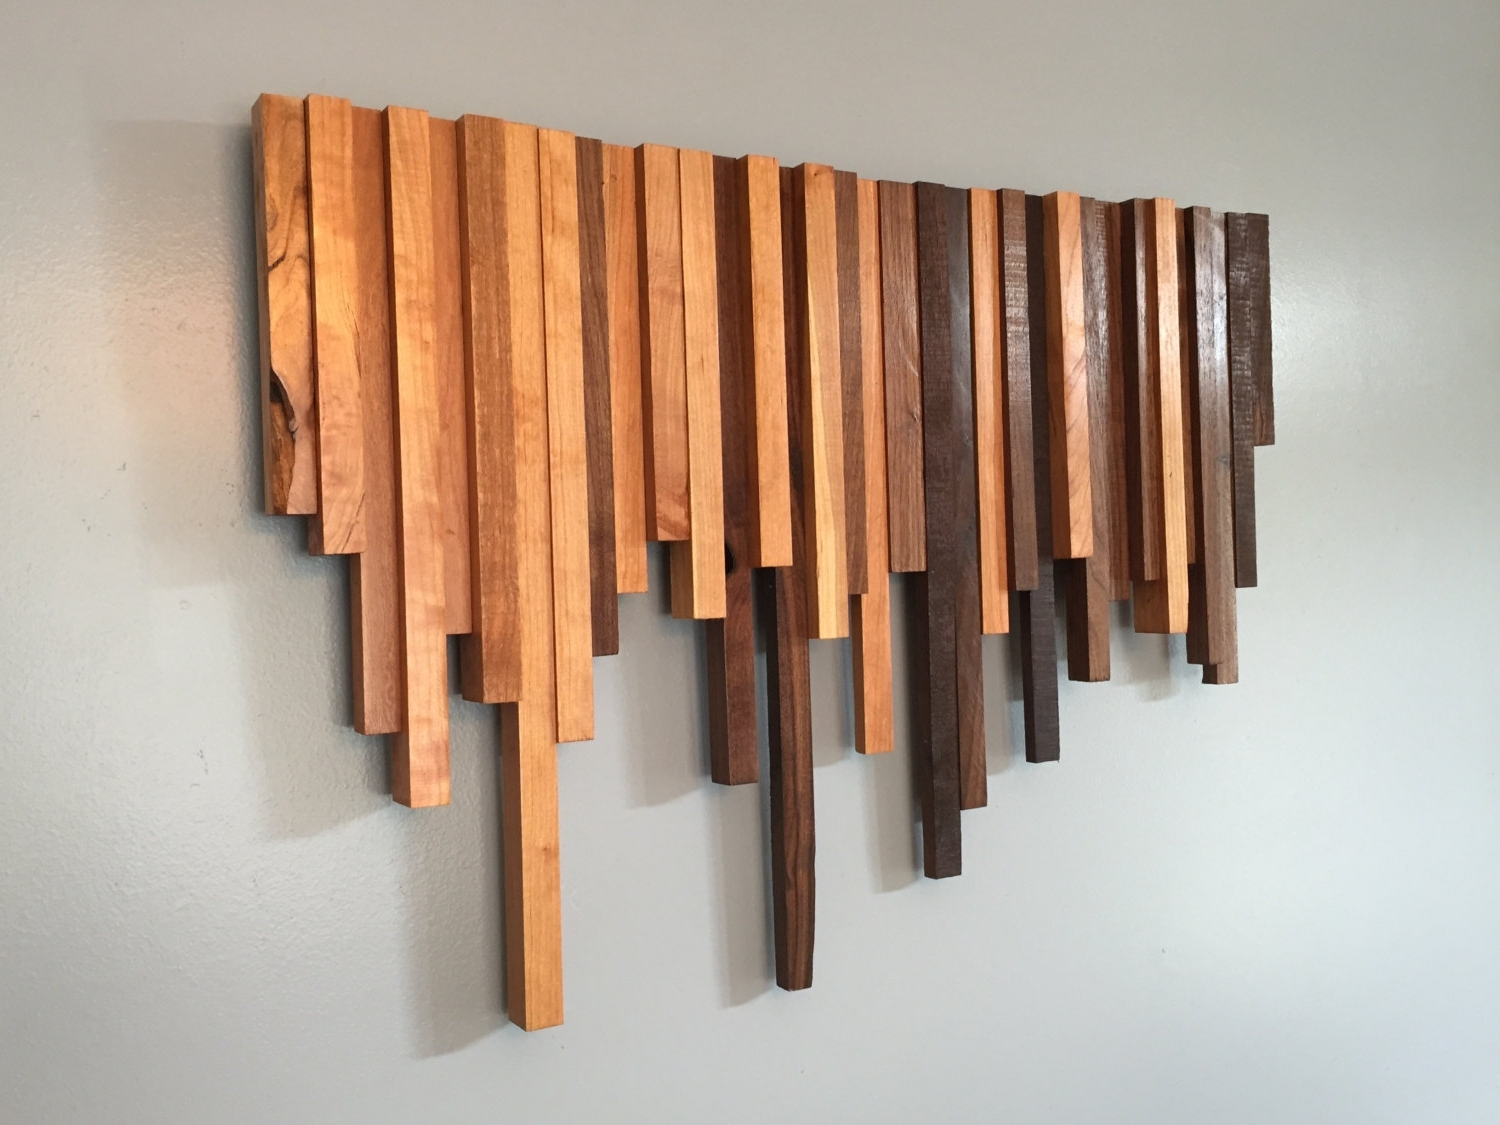 Best And Newest Creative Wood Wall Art Decor : Stylish Wood Wall Art Decor Inside Wood Wall Art (View 1 of 15)